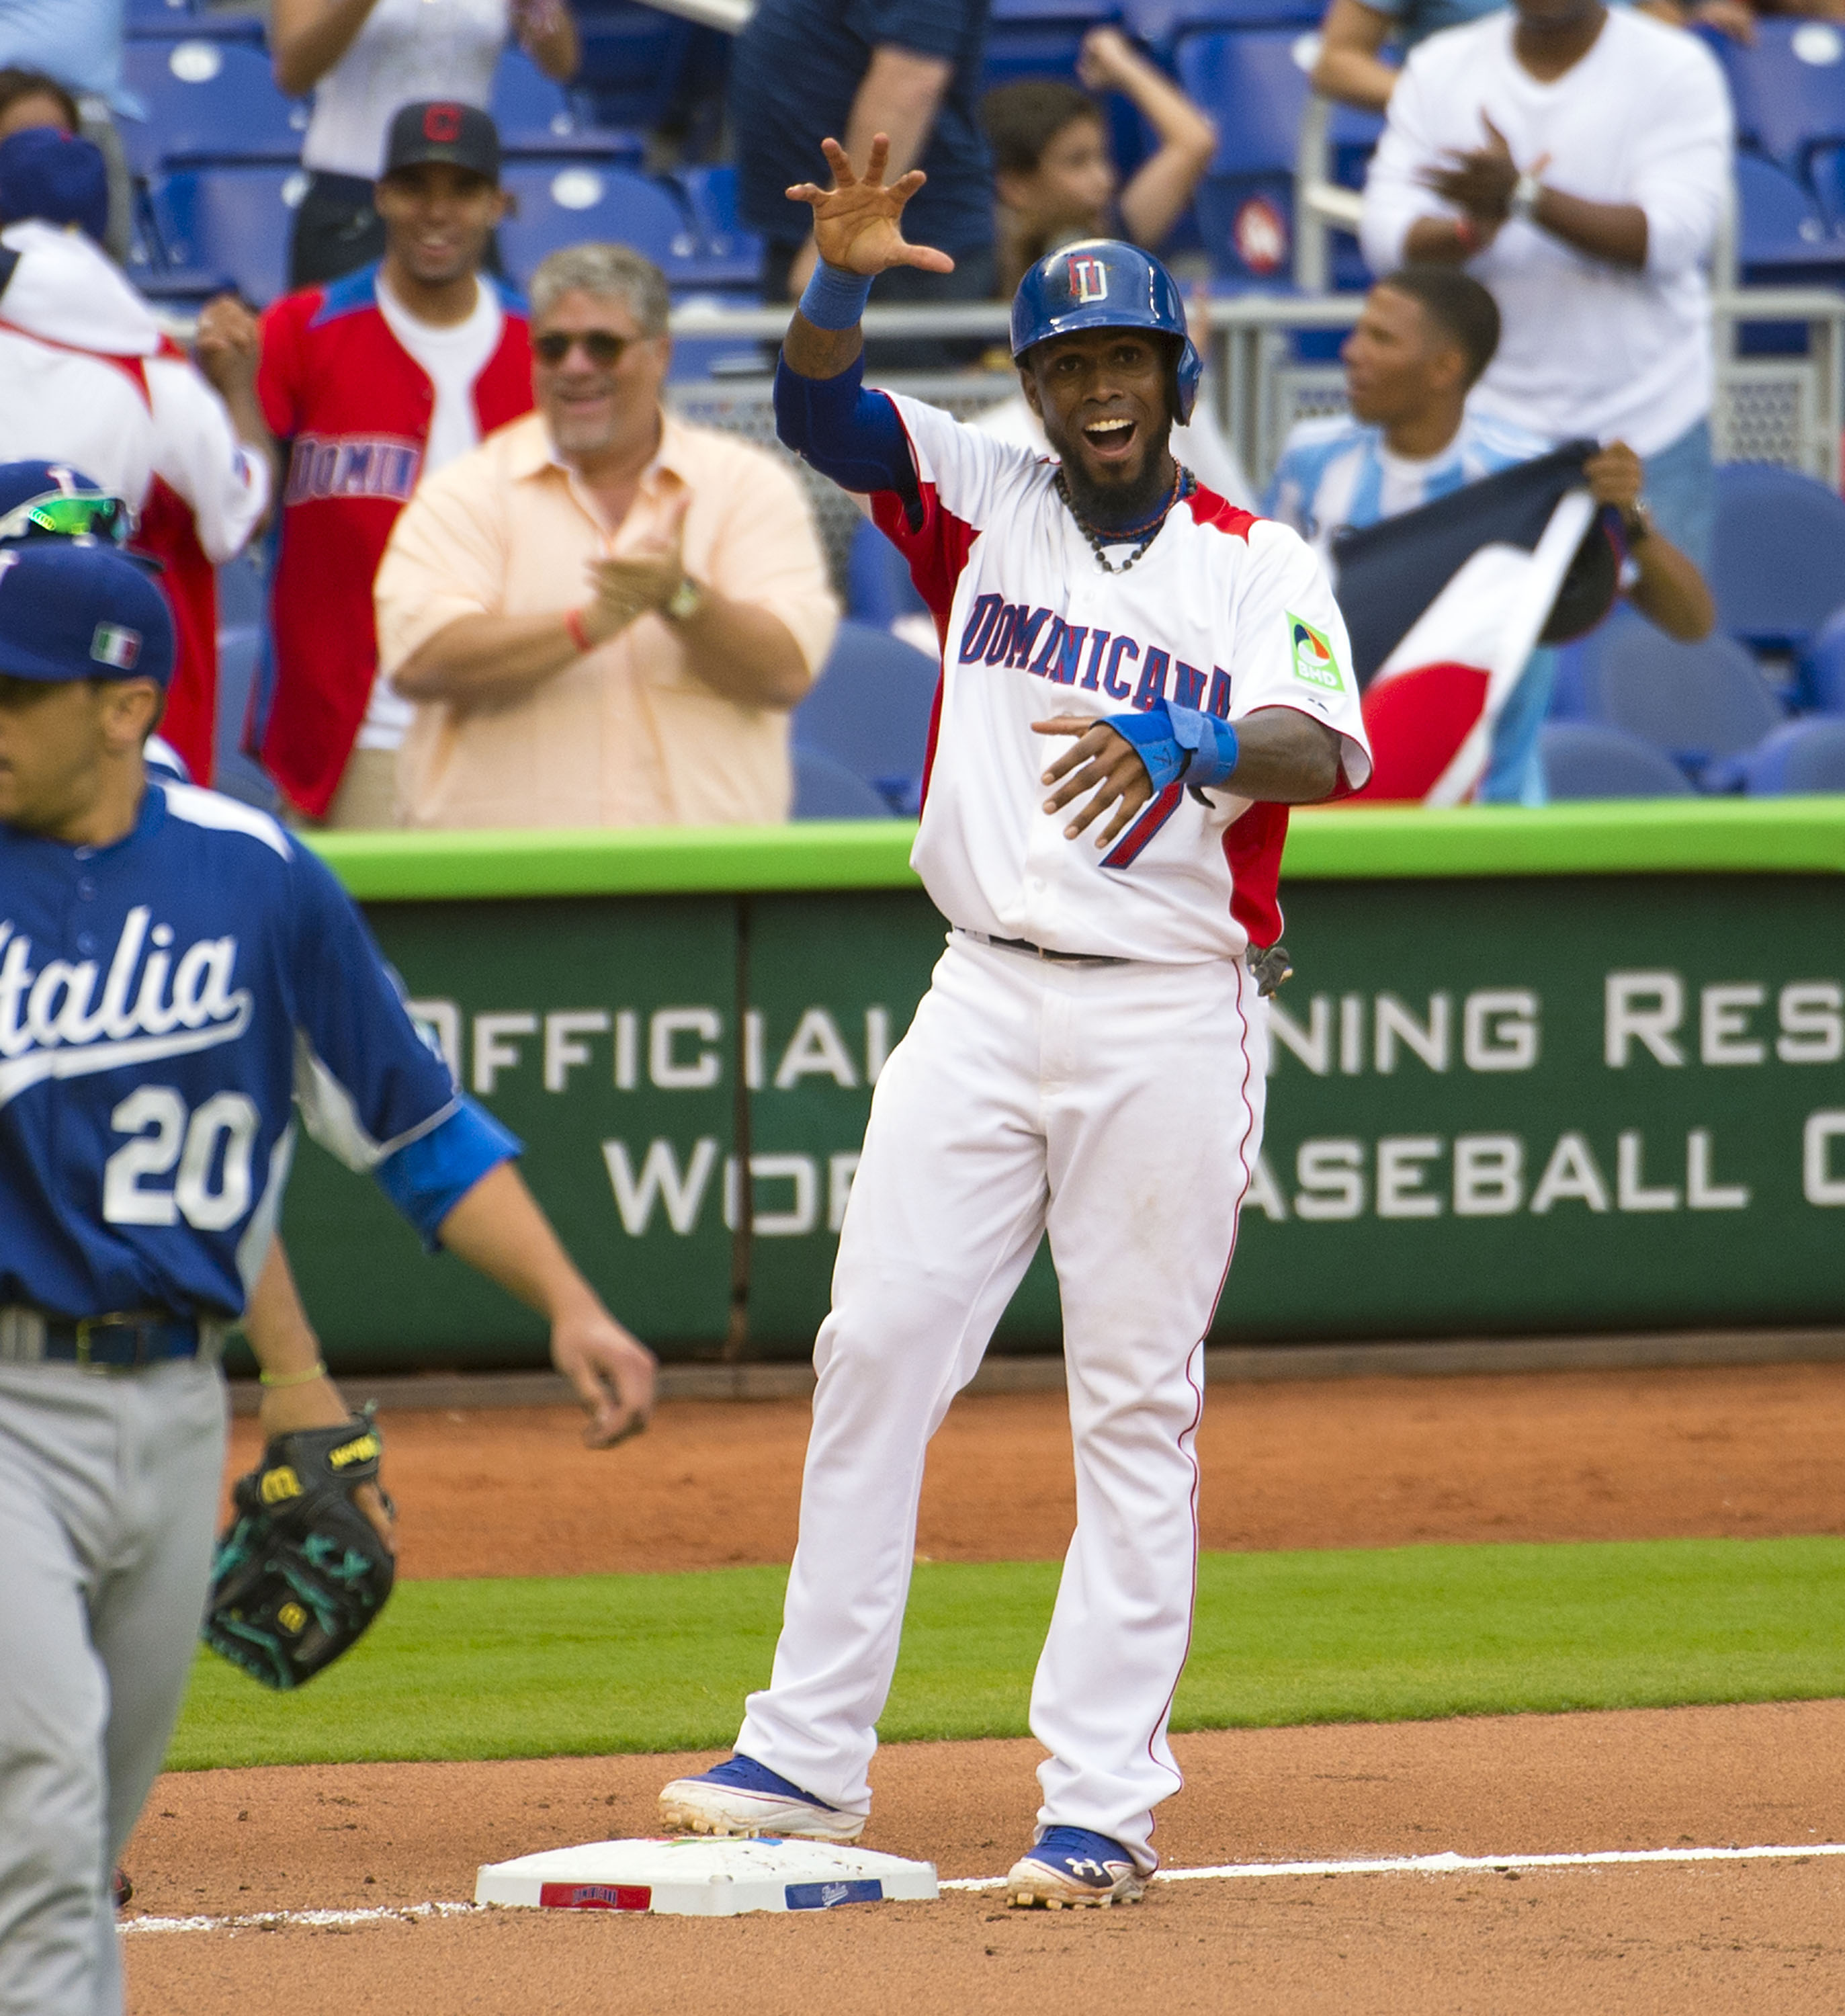 Jose Reyes homered in the Dominican Republic's comeback against Italy on Tuesday. (USA Today Sports)